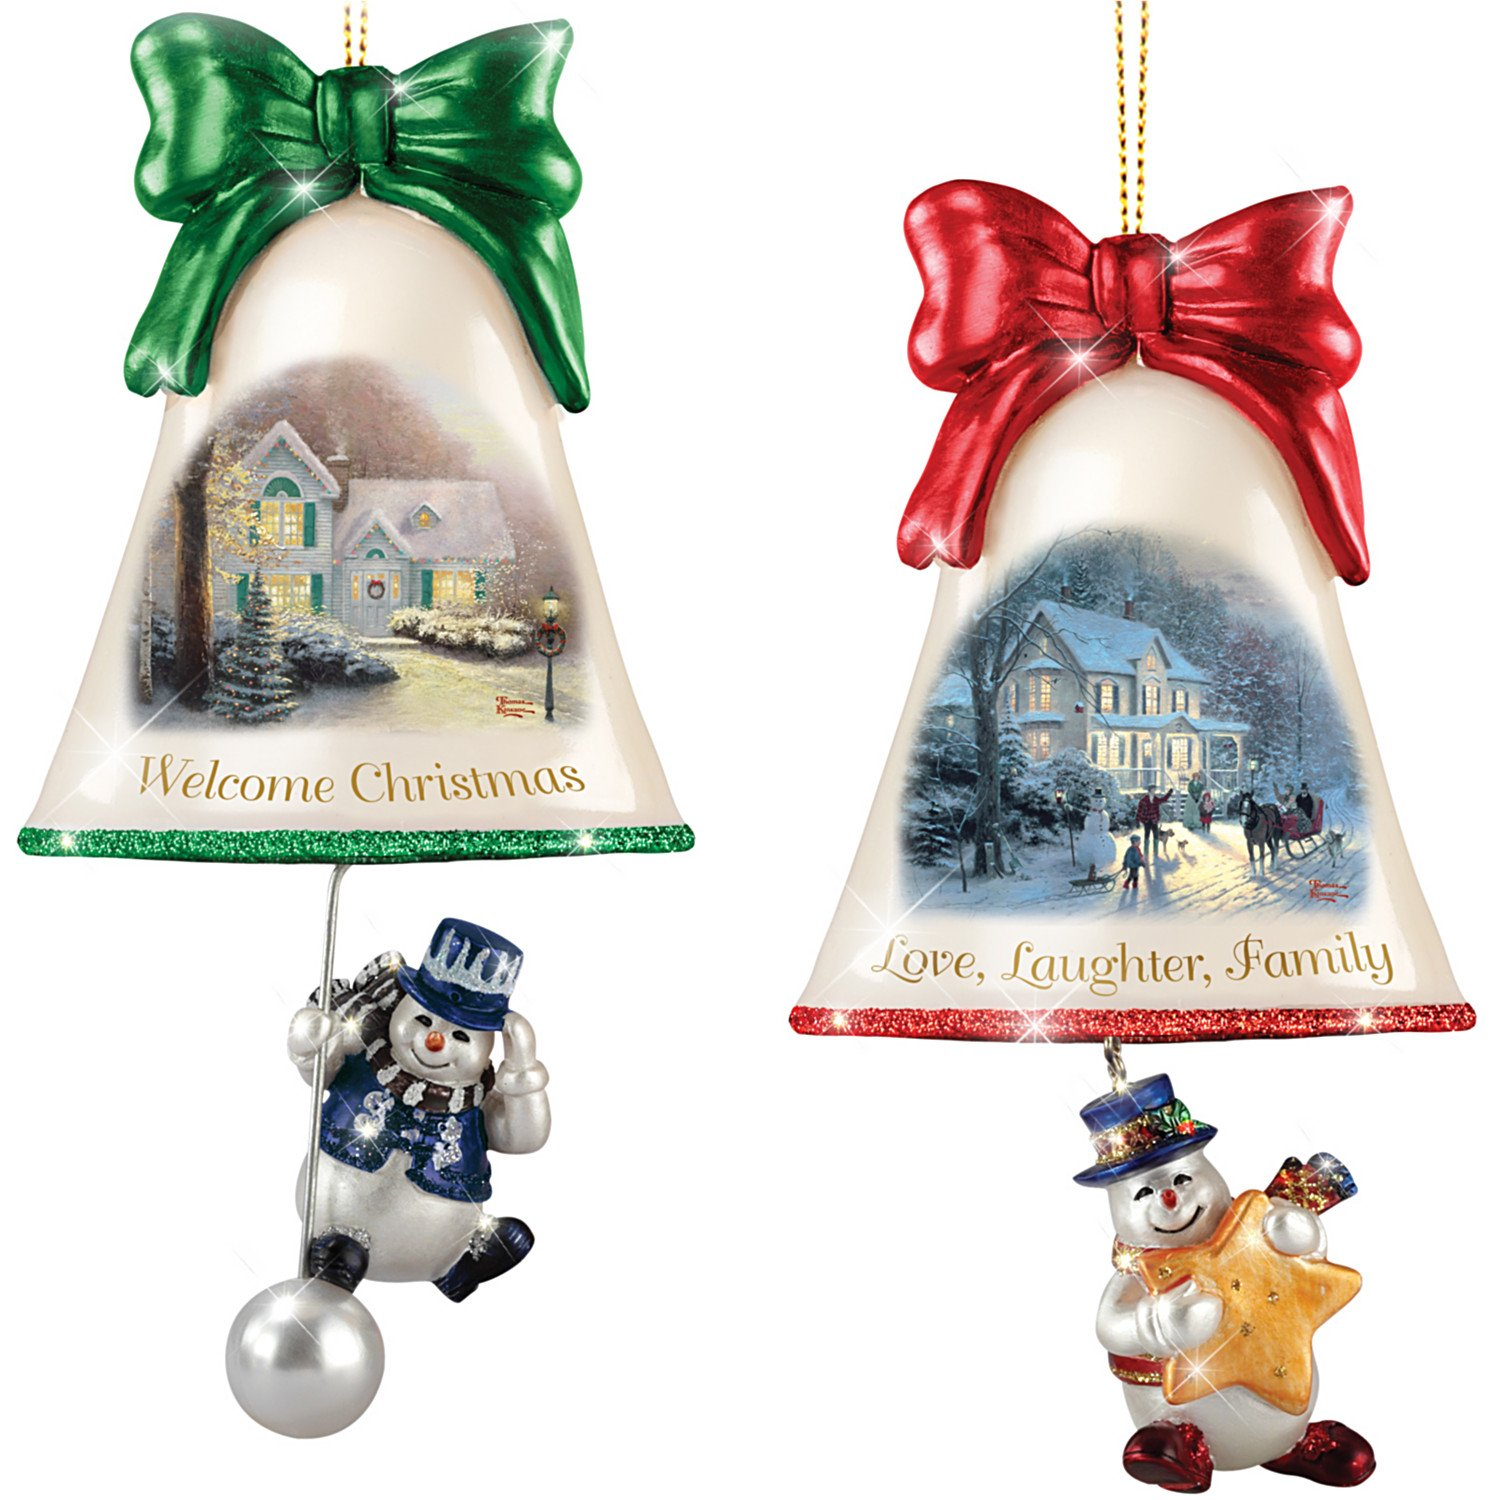 The Bradford Exchange Christmas Ornaments: Thomas Kinkade Ringing in The Holidays Ornament Set: Set 5